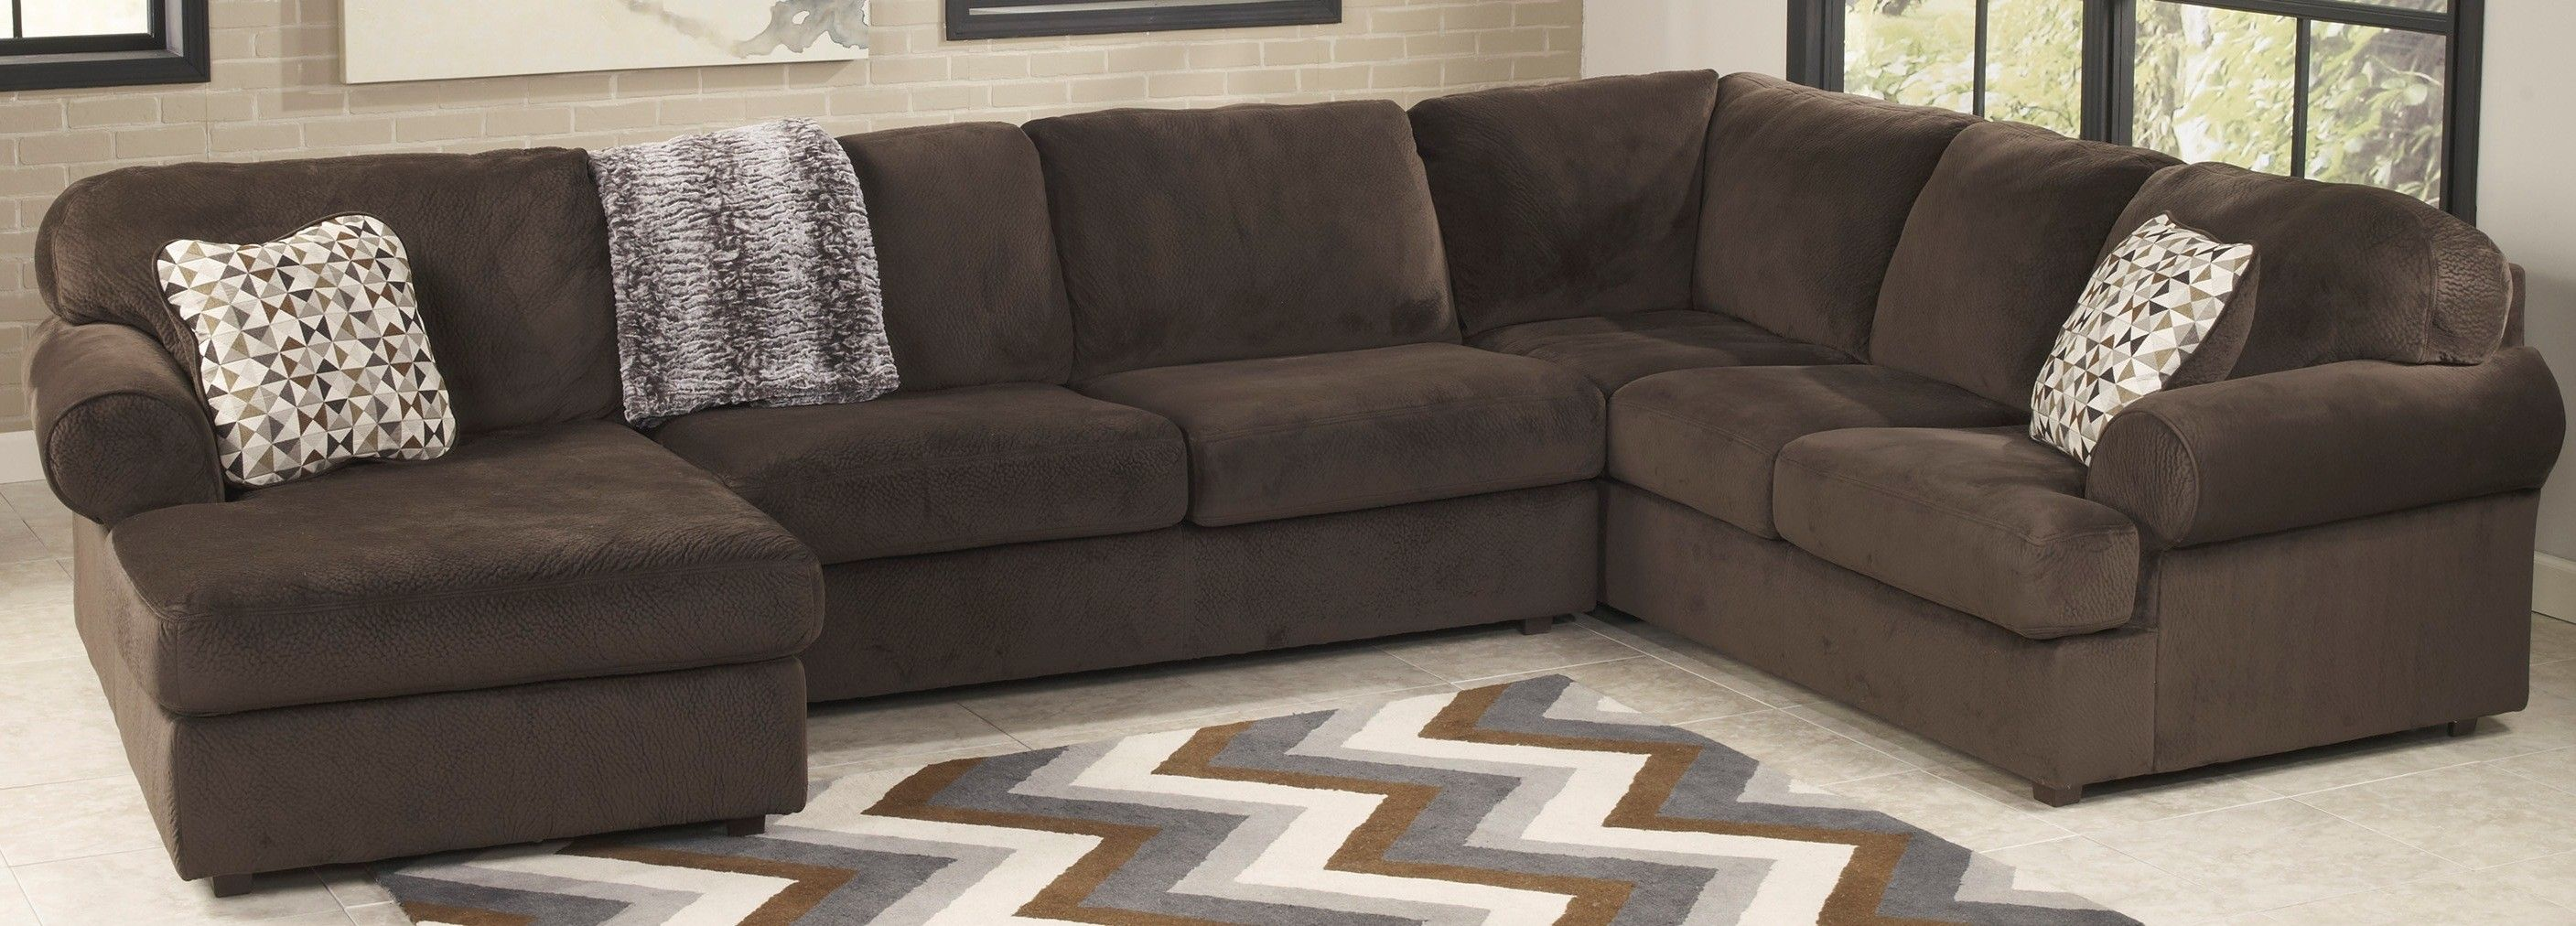 Ashley Furniture 3980467 3980434 3980416 Jessa Place Chocolate For Sectional Reviews 31944